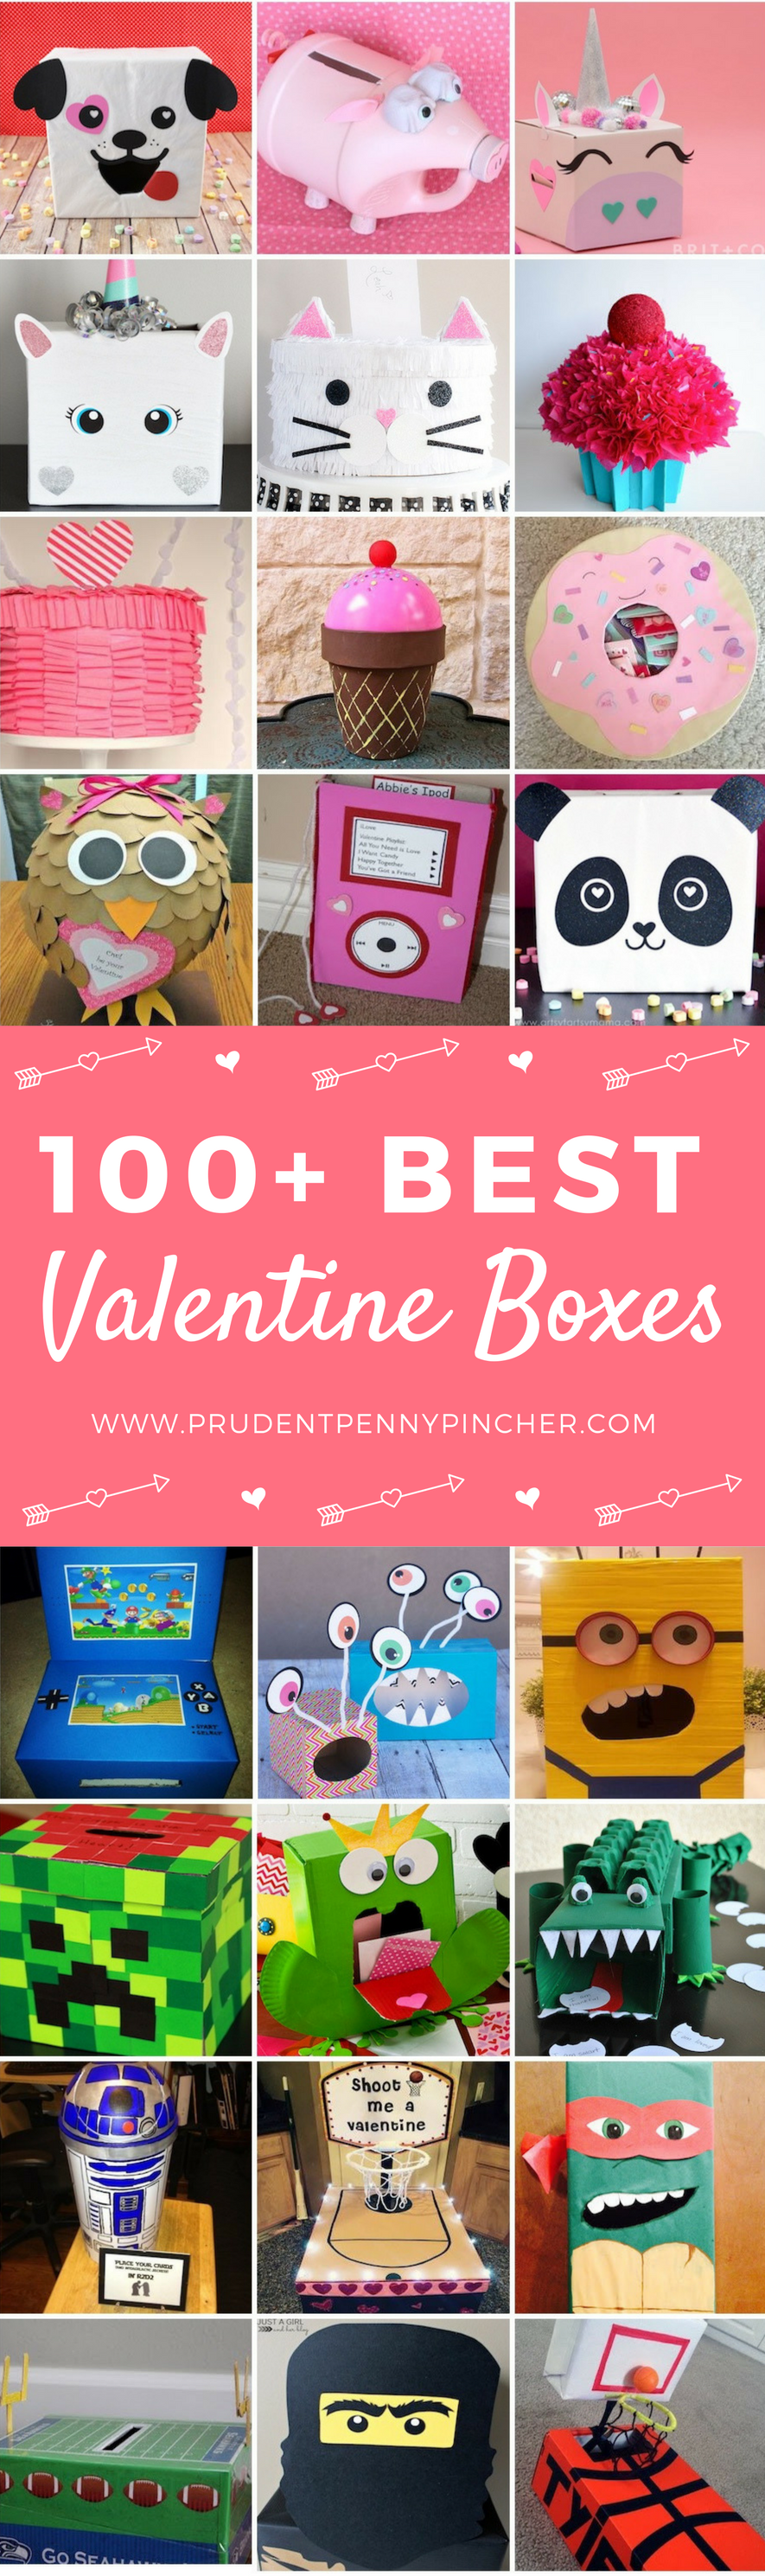 100 Best Valentine Box Ideas Prudent Penny Pincher